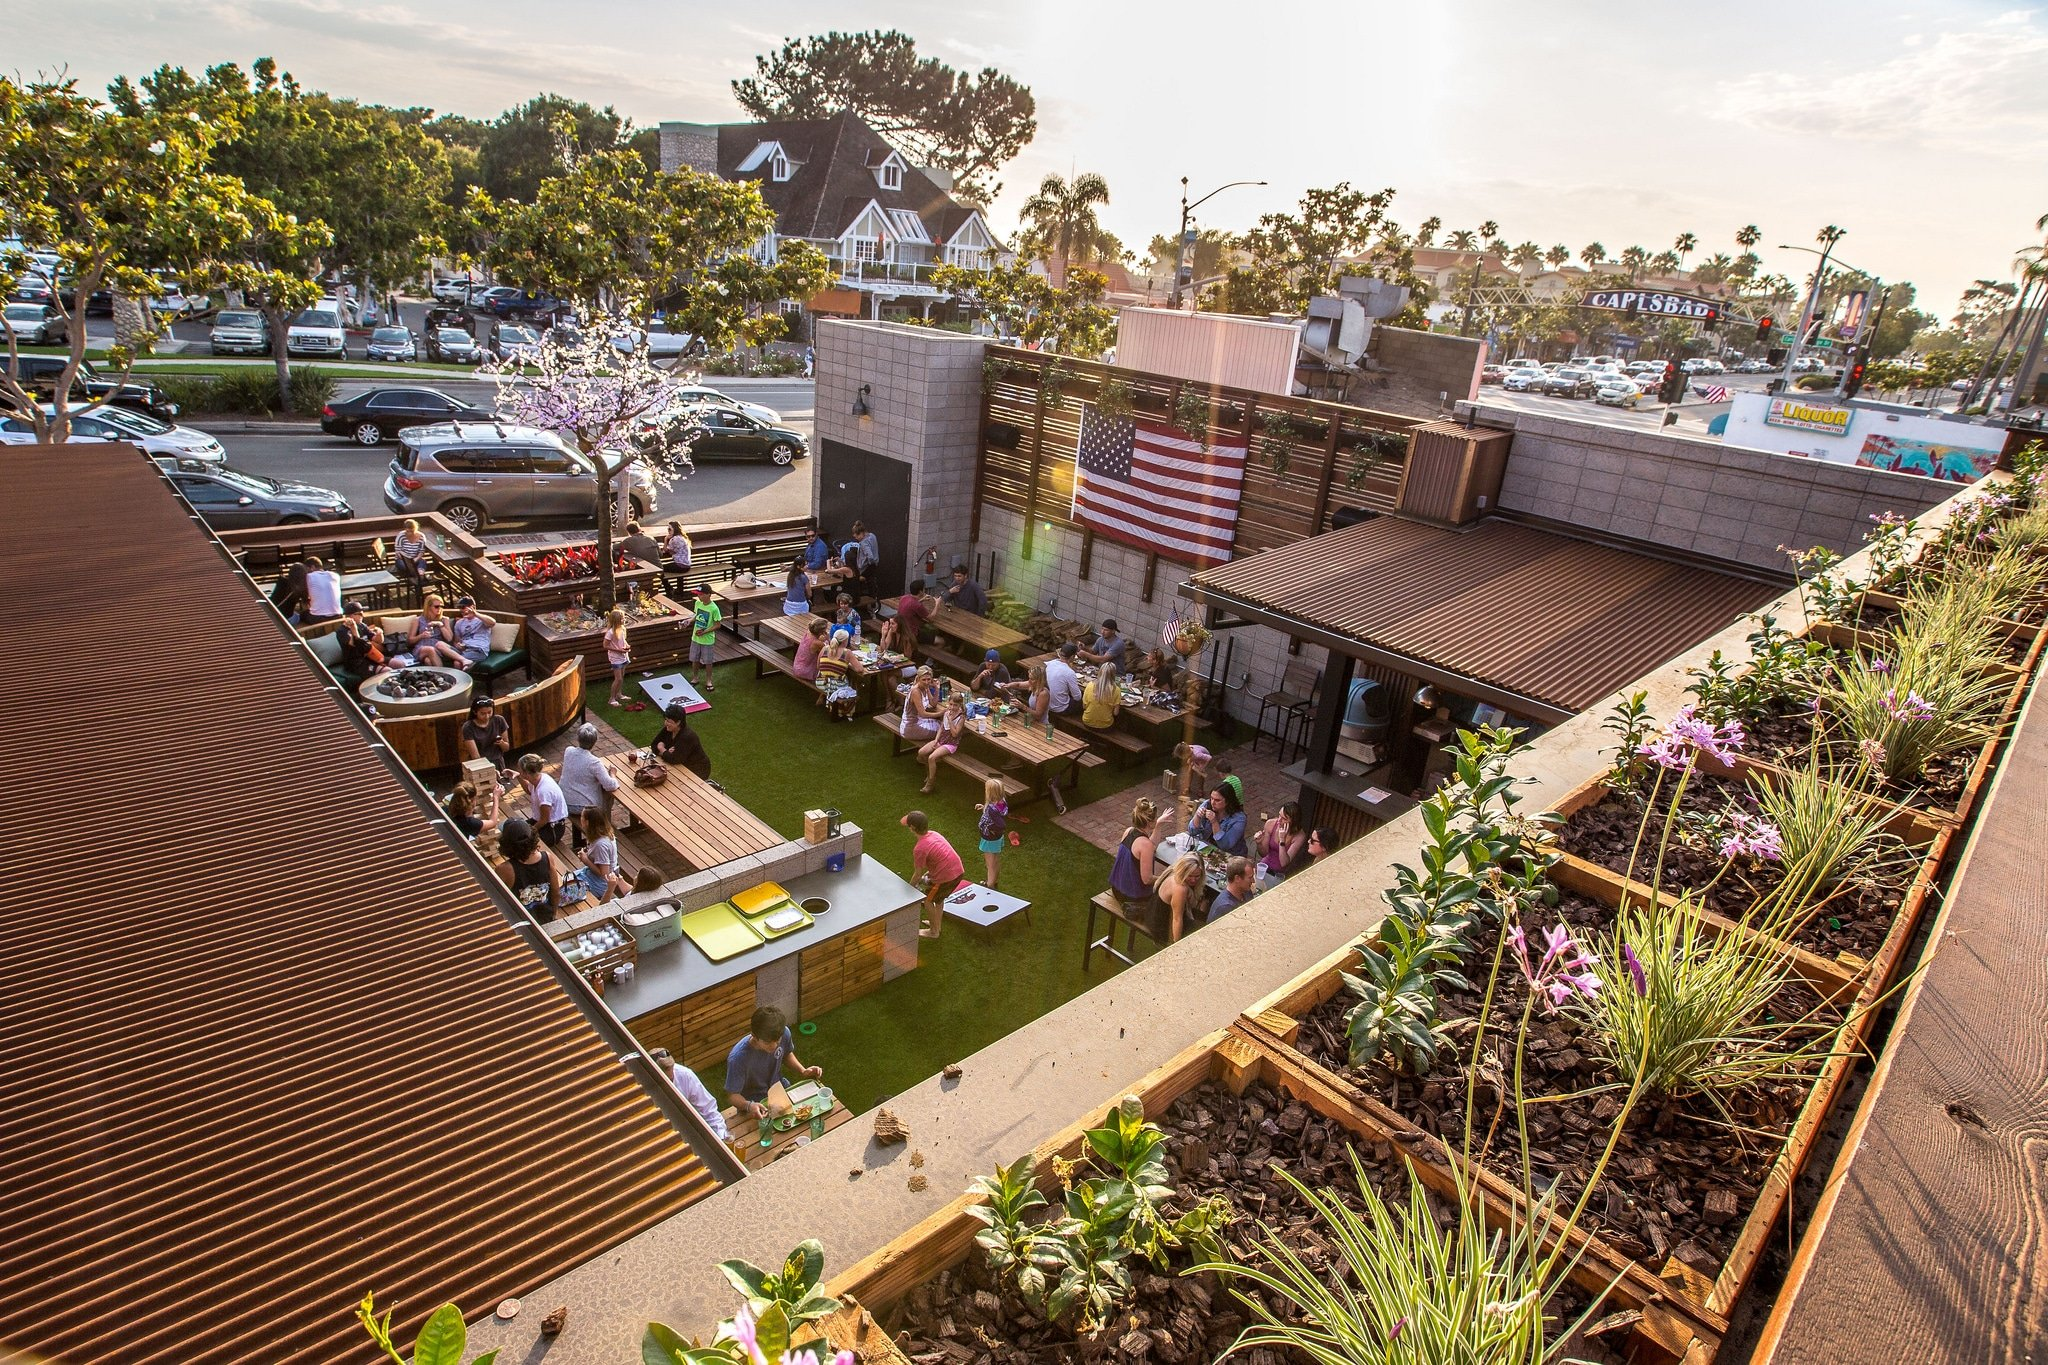 Garden Pub at Park 101 restaurant in Carlsbad